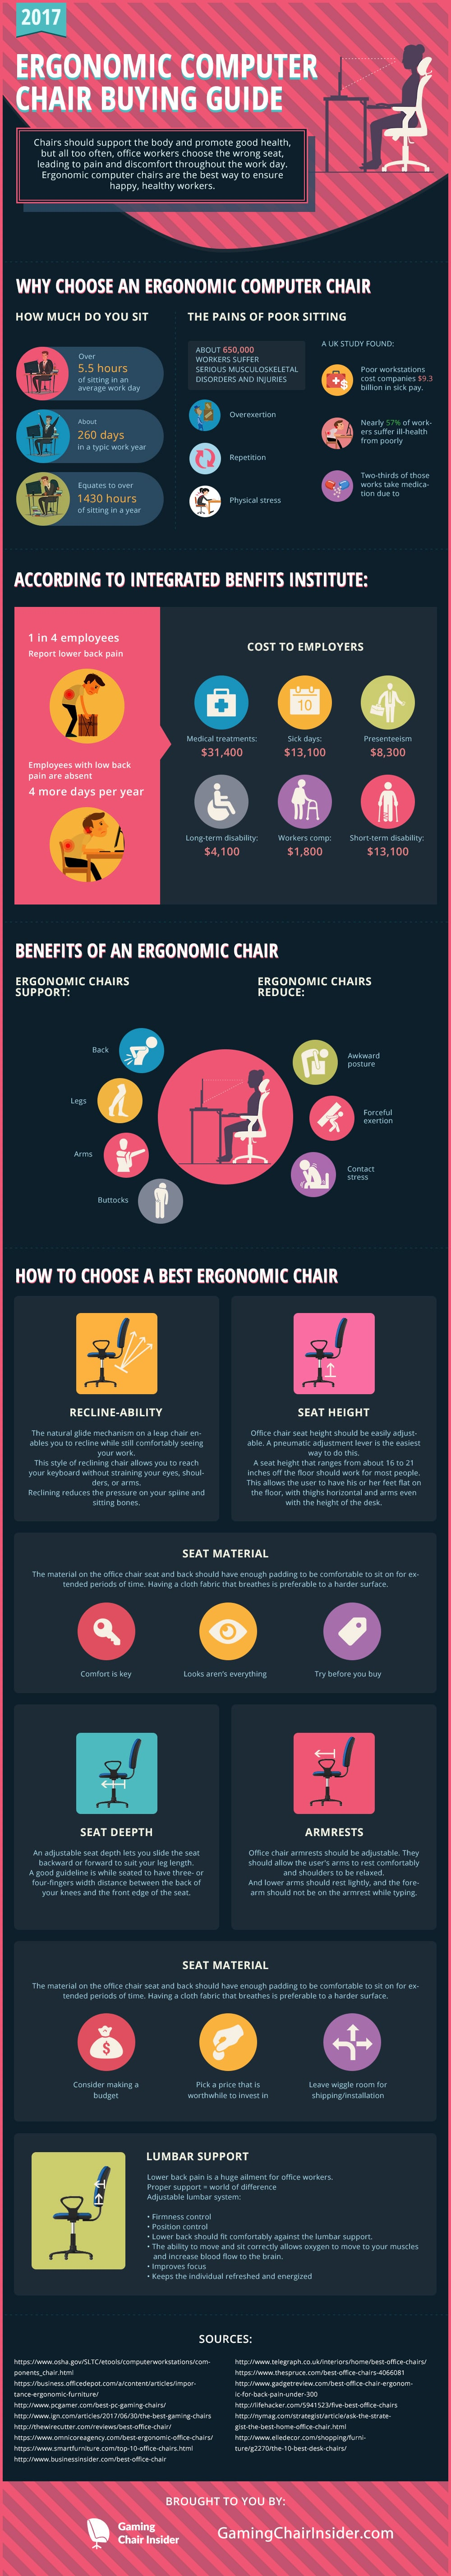 Ergonomic Office Chairs Guide Infographic